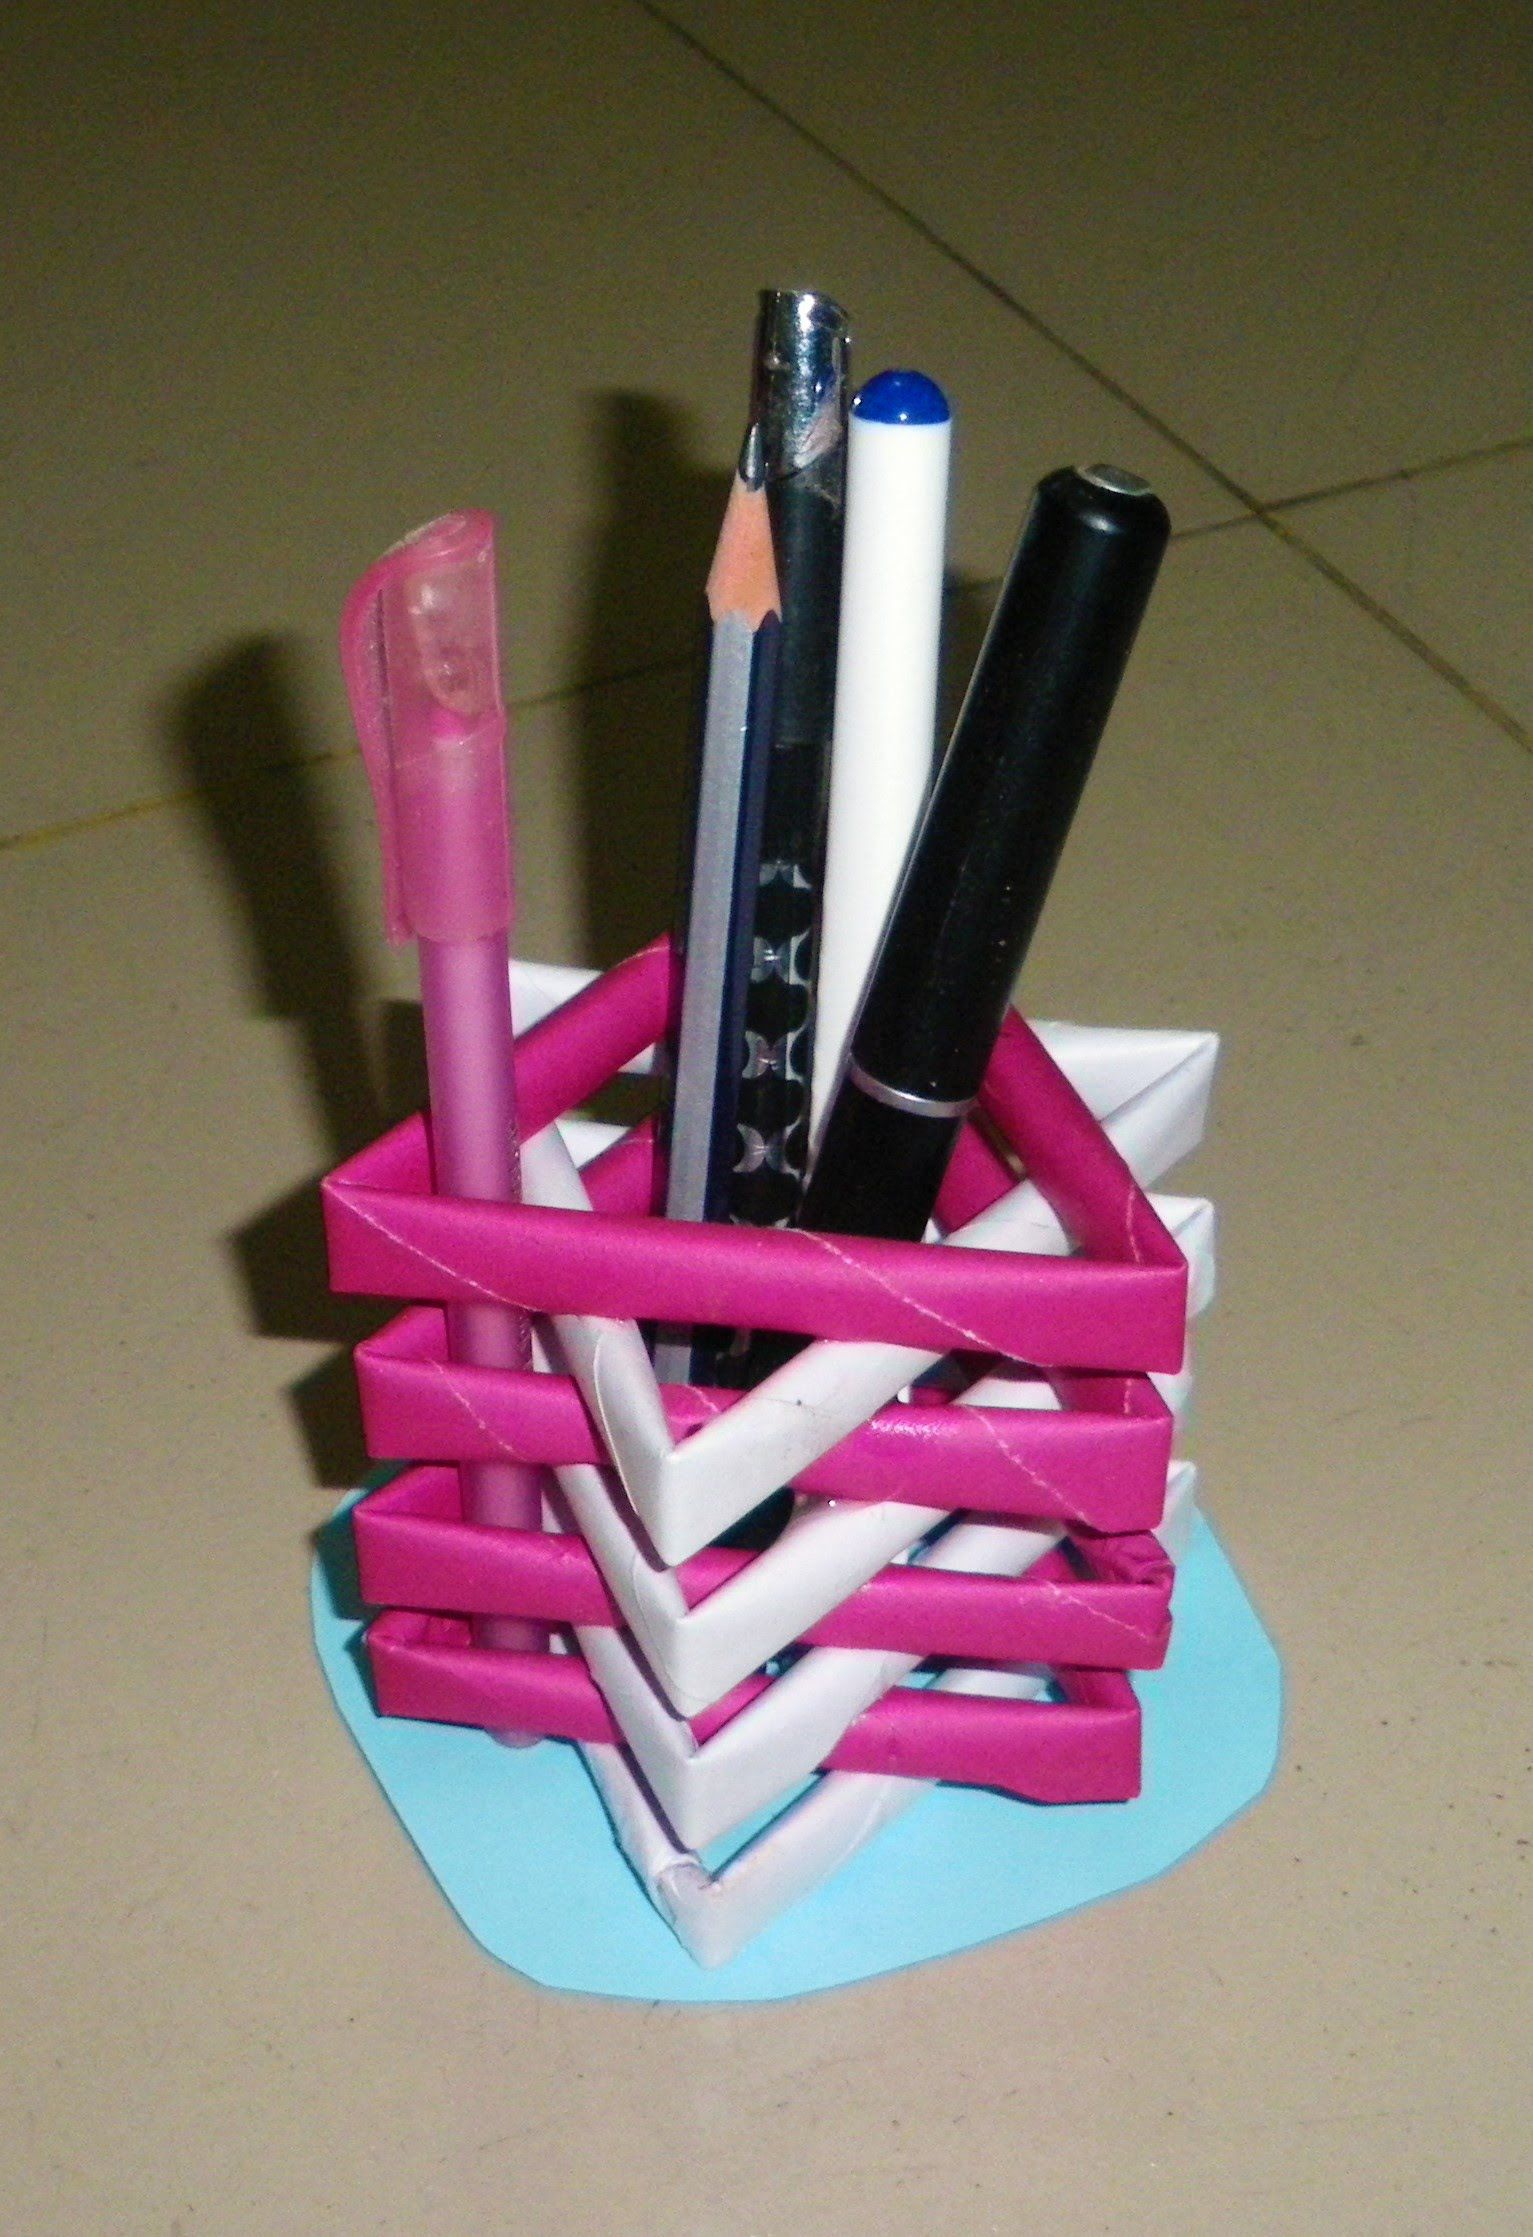 How to make a pen stand from waste material diy paper for Waste to useful crafts